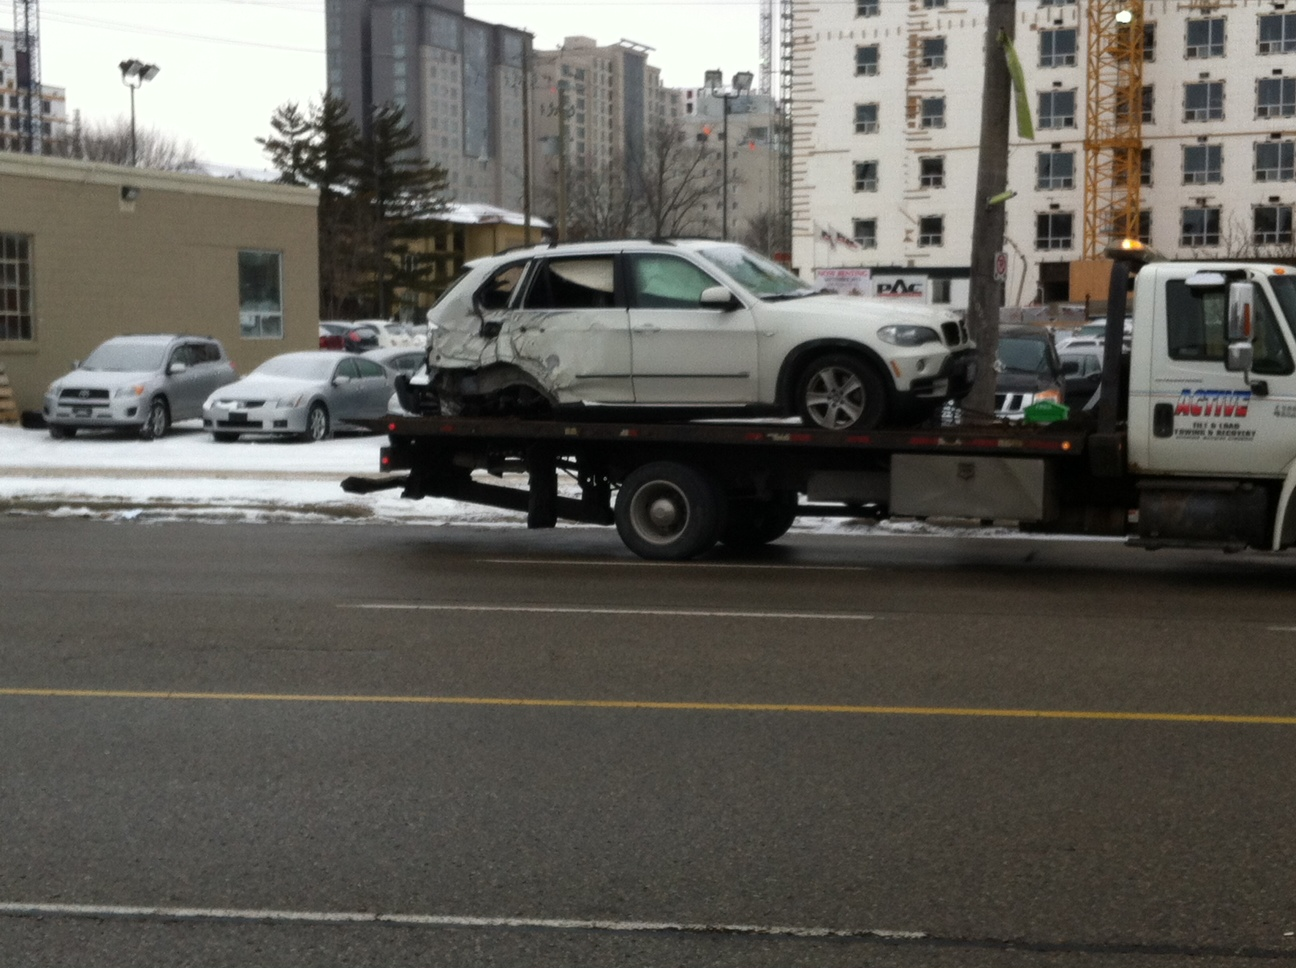 The SUV involved in the first accident.